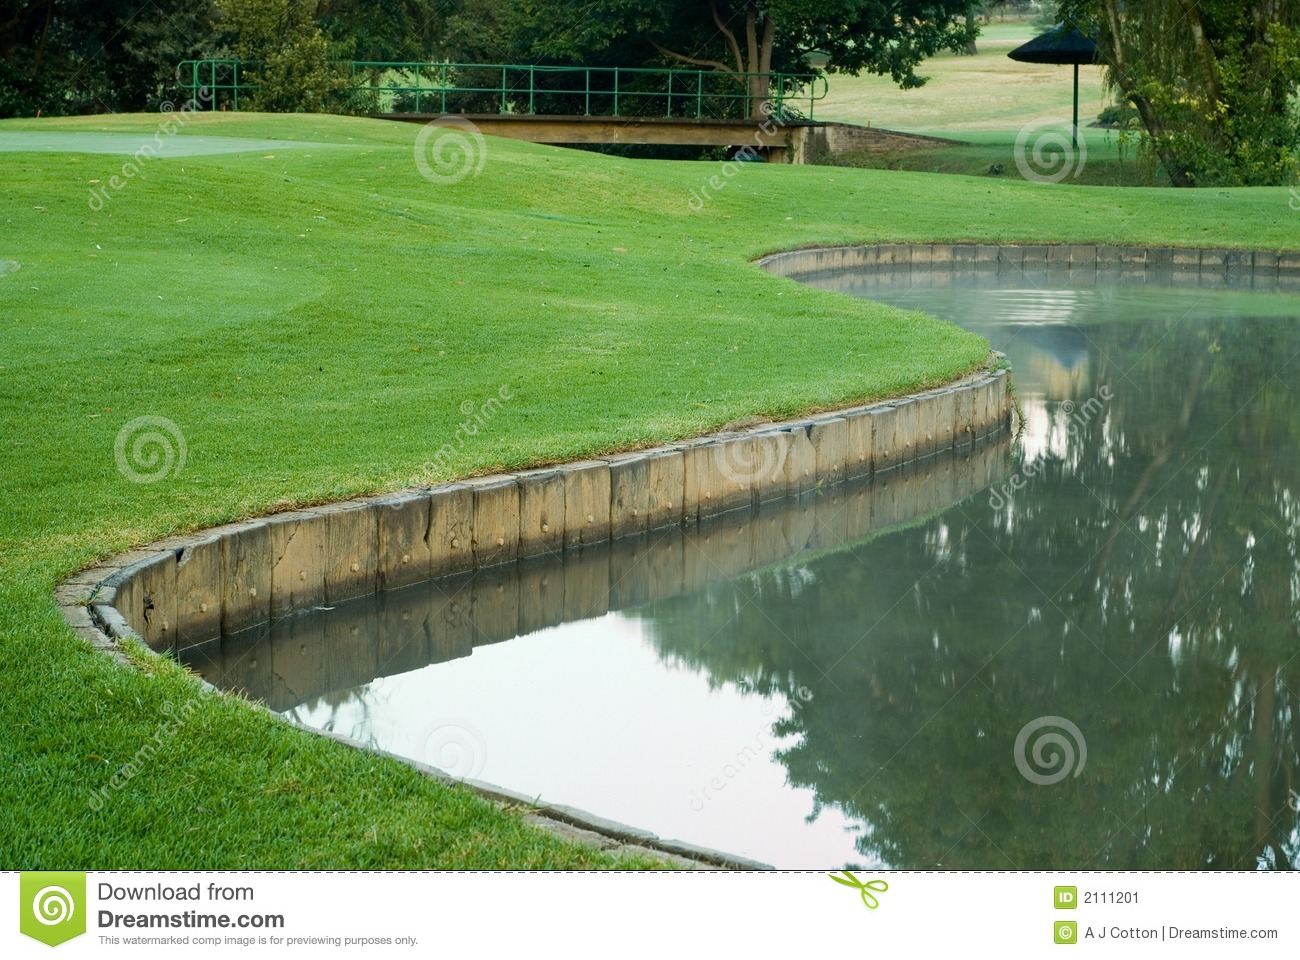 golf green and water hazard stock image